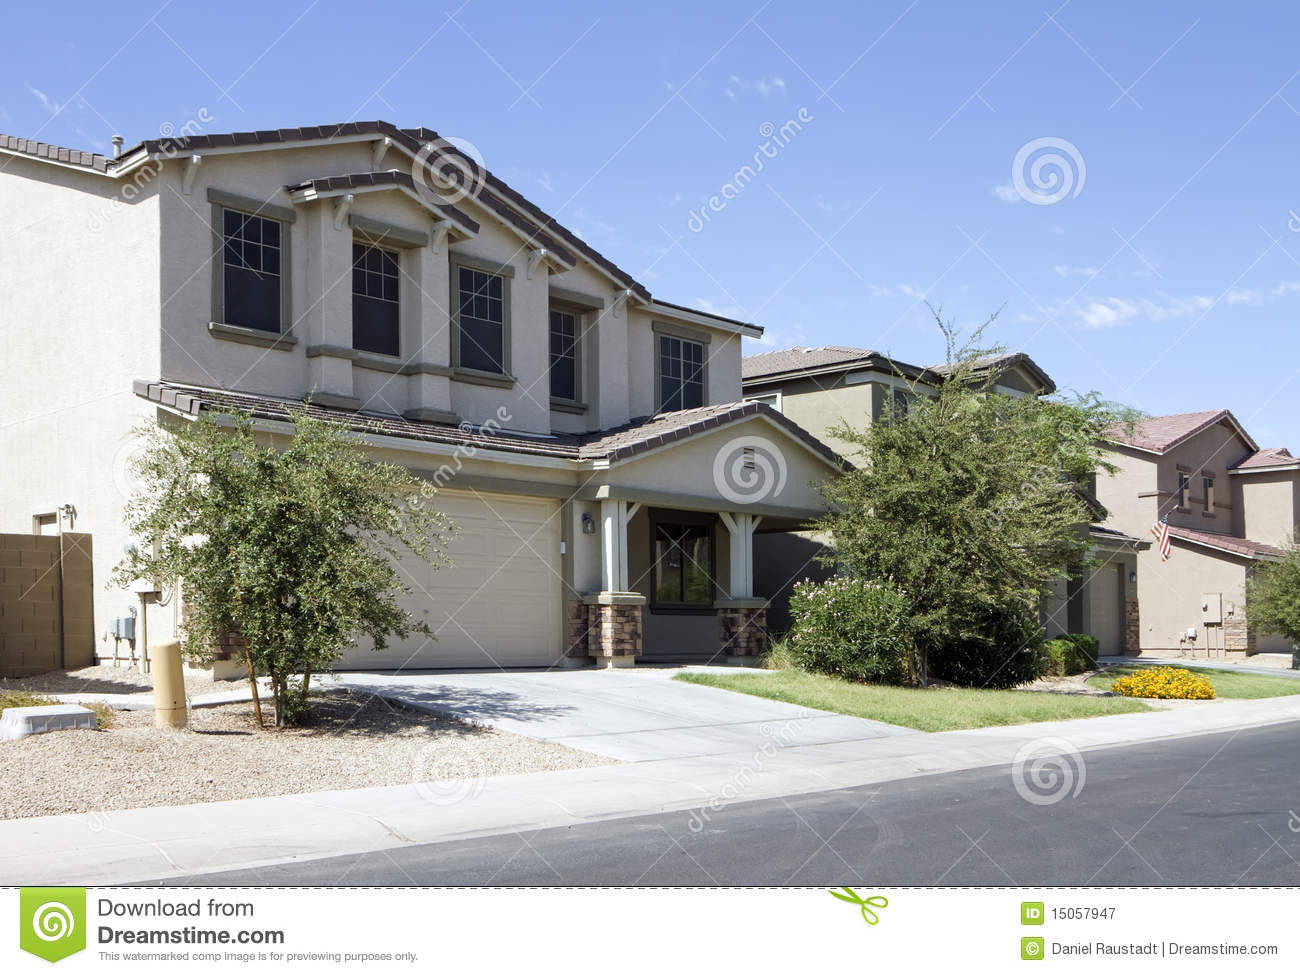 New modern classic home neighborhood stock photo for Classic modern homes